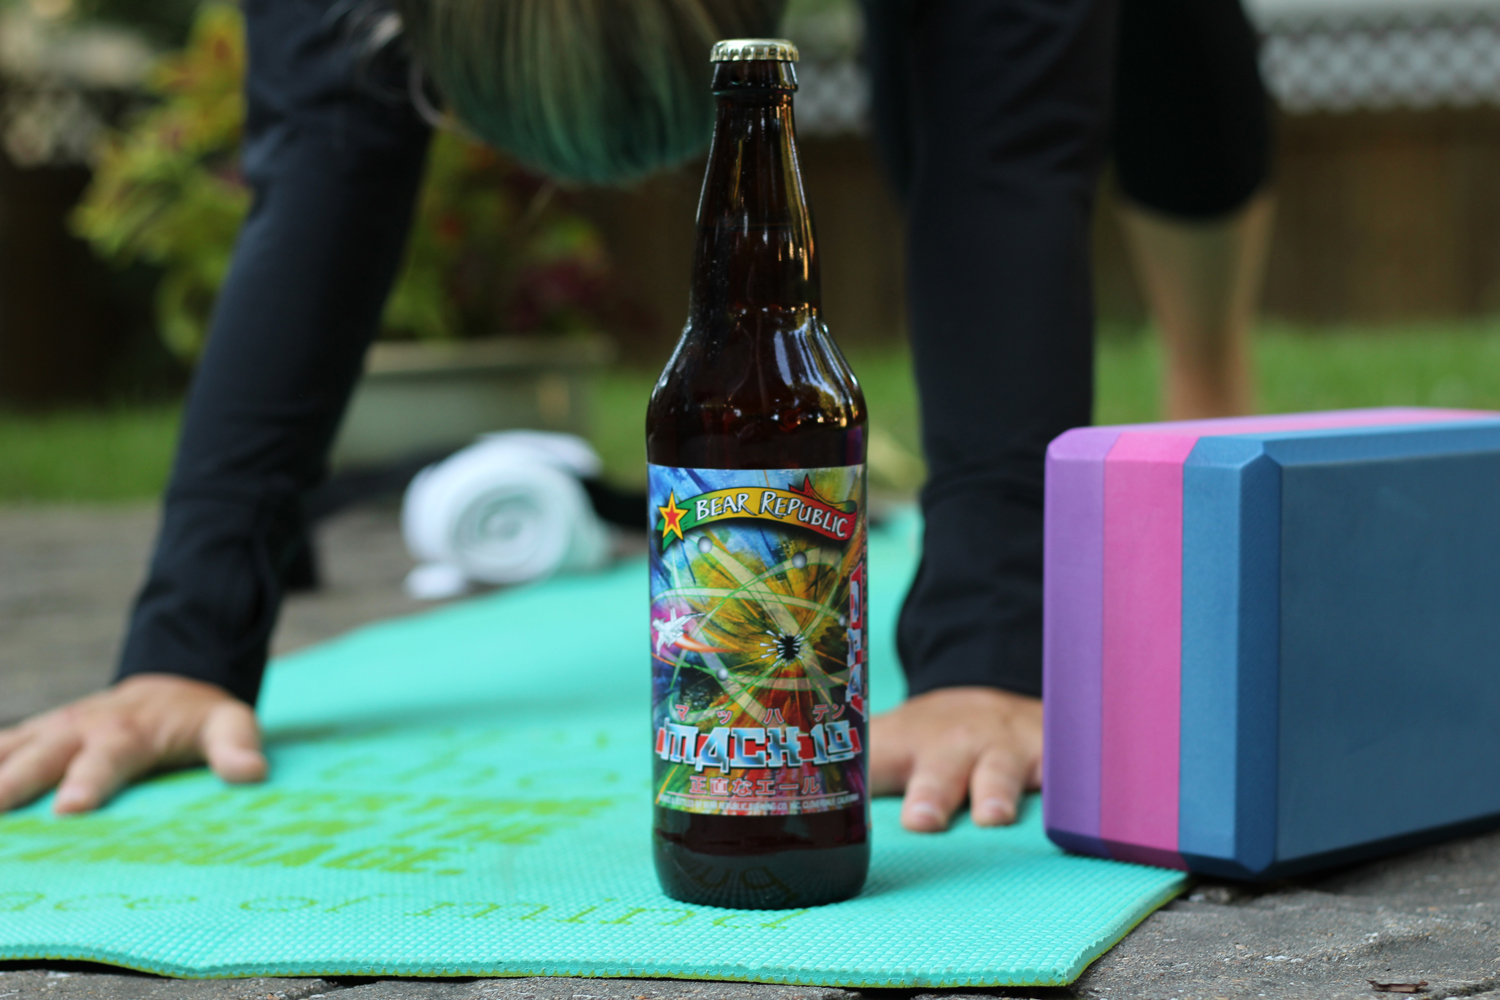 Mach 10 summer beer is the perfect evening double ipa.